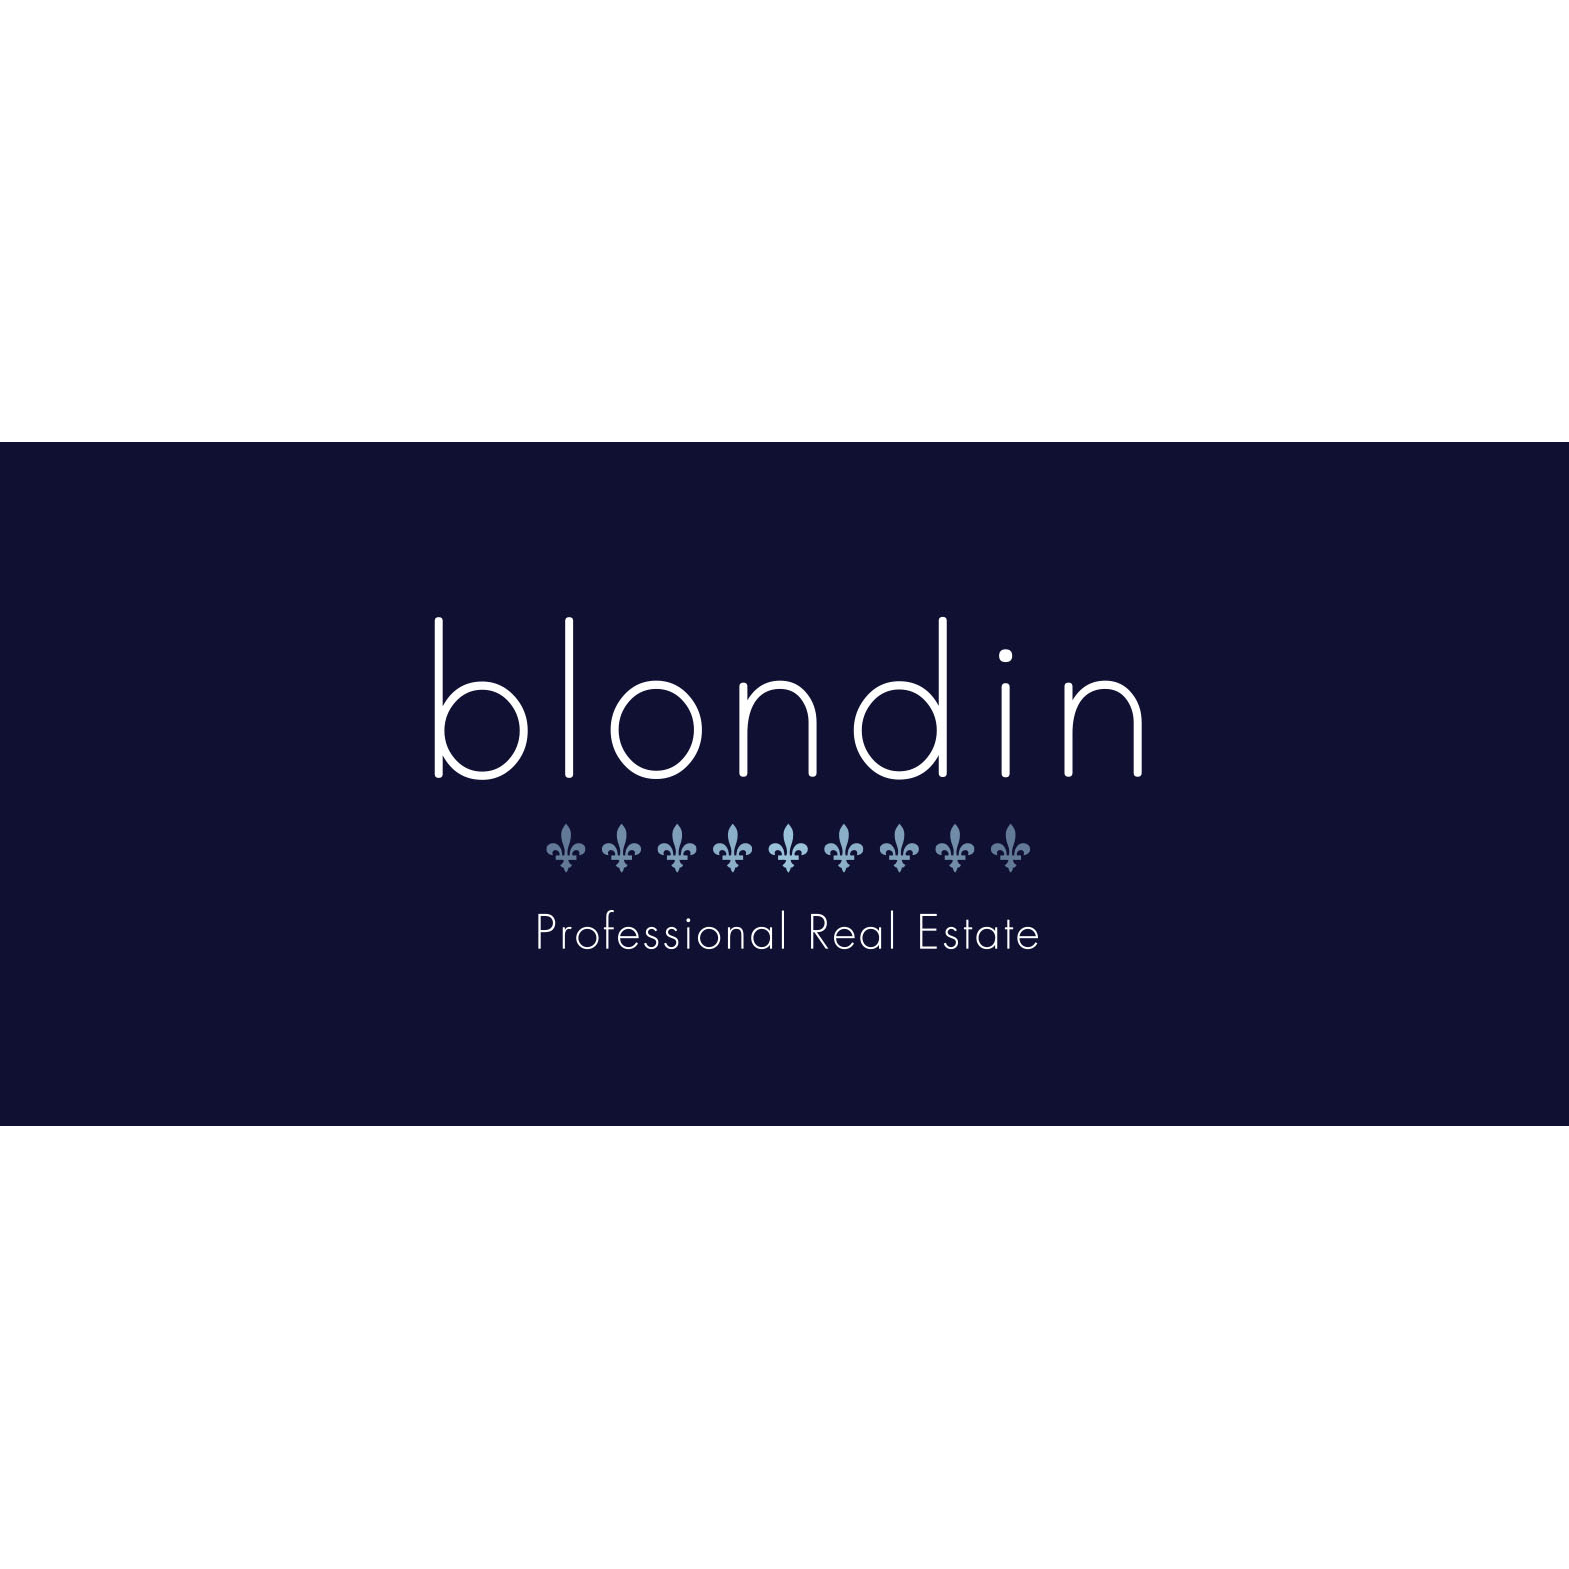 Real Estate Professional : Blondin professional real estate in new melle mo